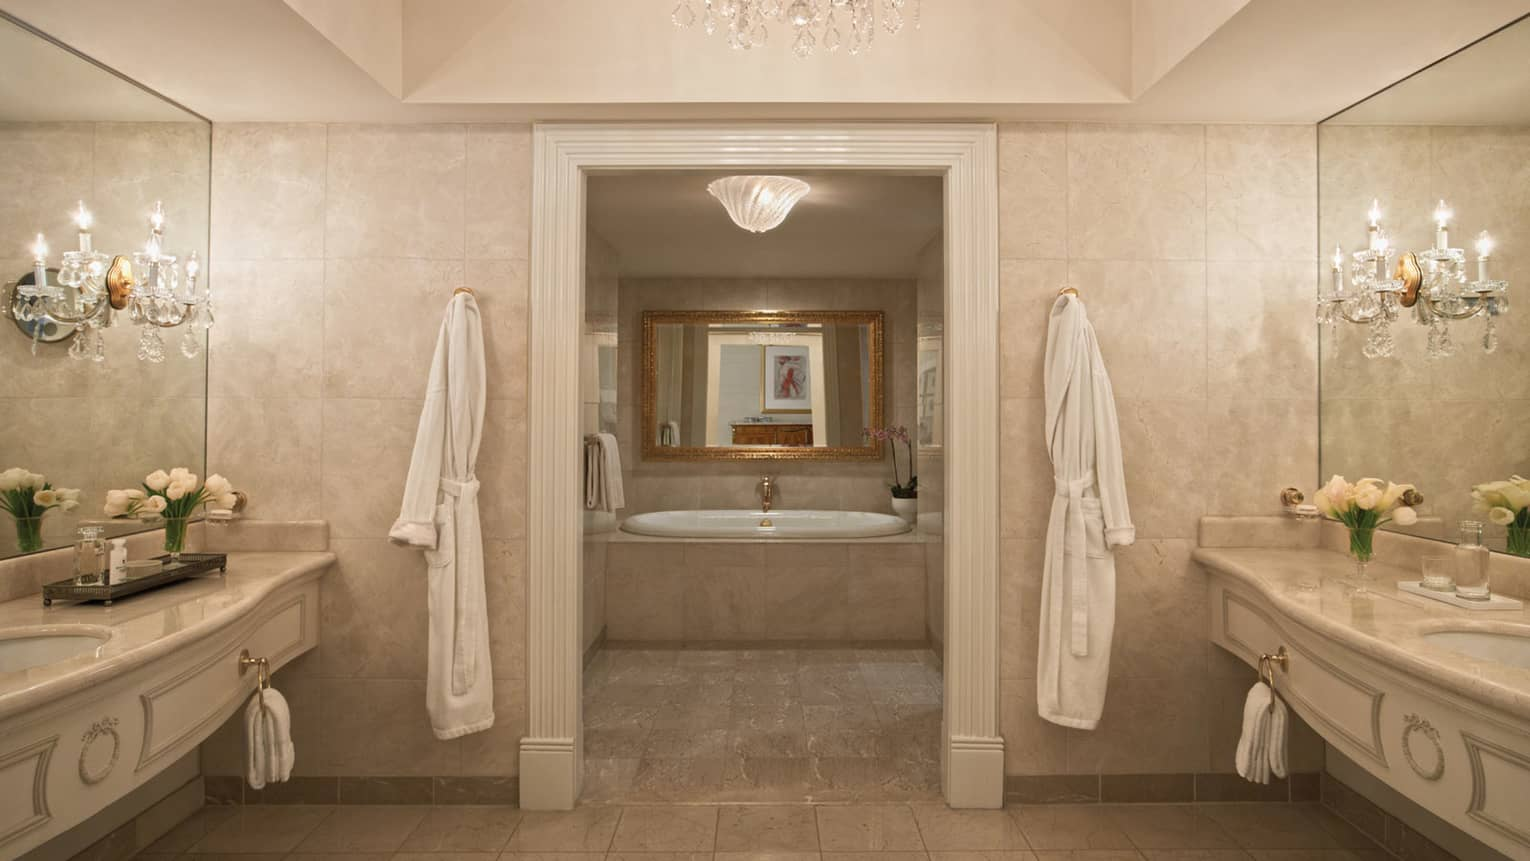 Presidential Suite master marble bathroom with white robes hanging on either side of doorway to tub